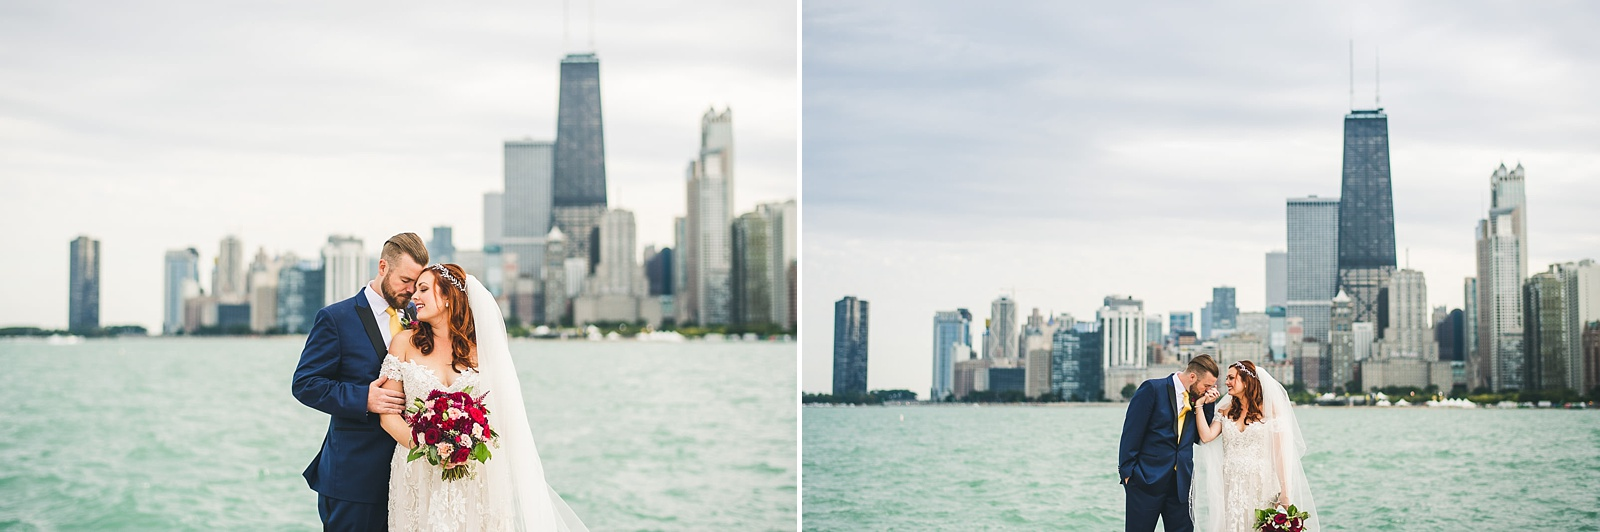 46 chicago wedding photos - Hilton Chicago Wedding Photographer // Sarah + Aaron